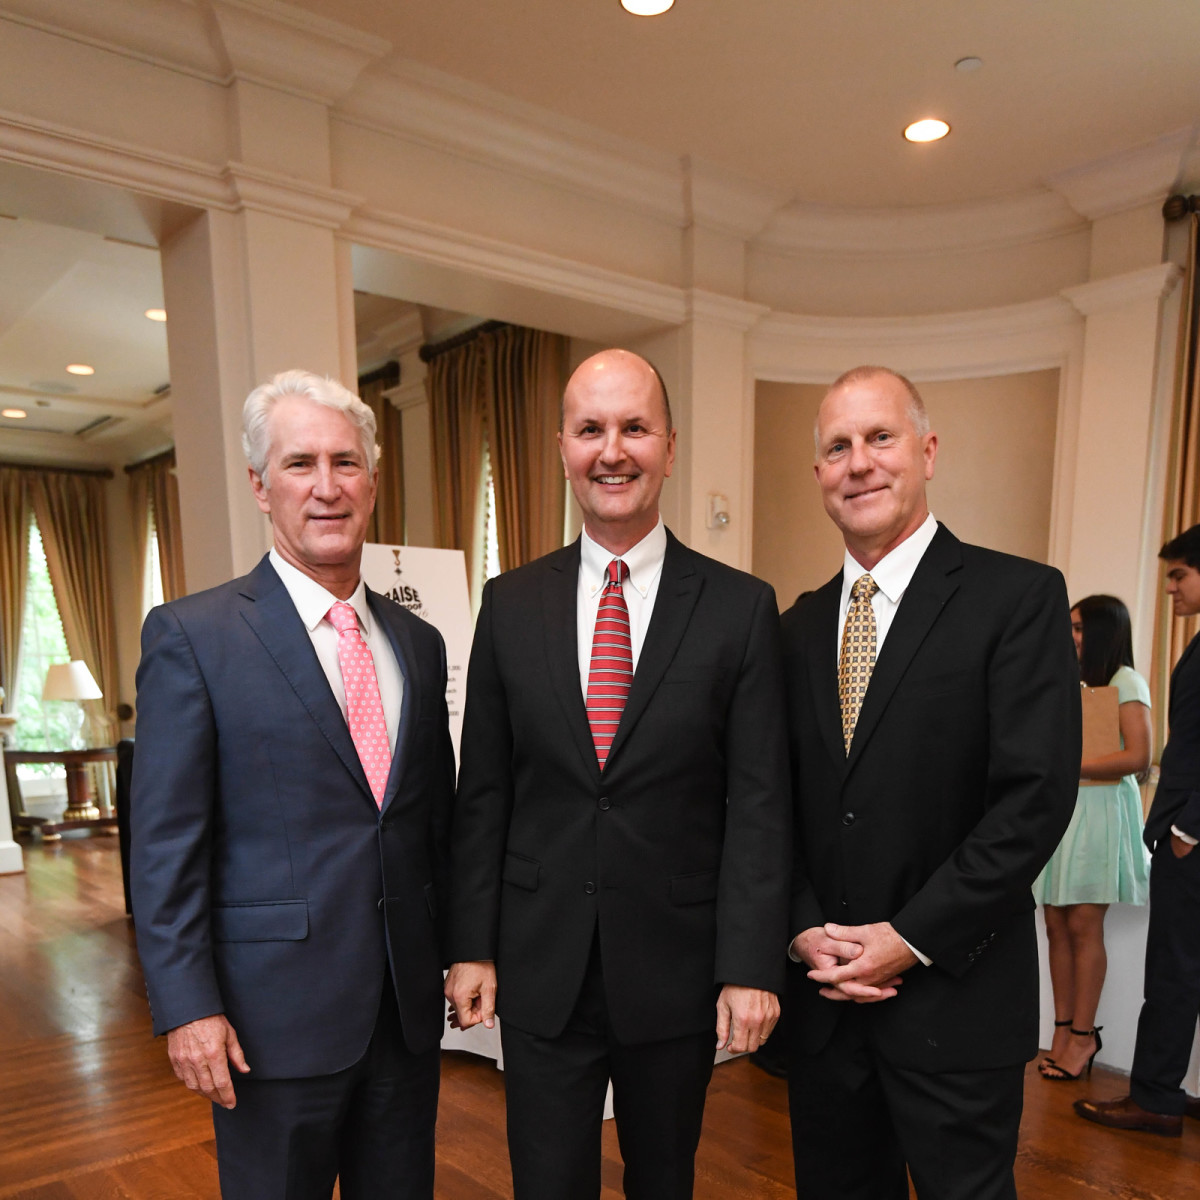 Chinquapin gala 5/16 Bart Bentley, Peter Boudreaux, Tom Forney